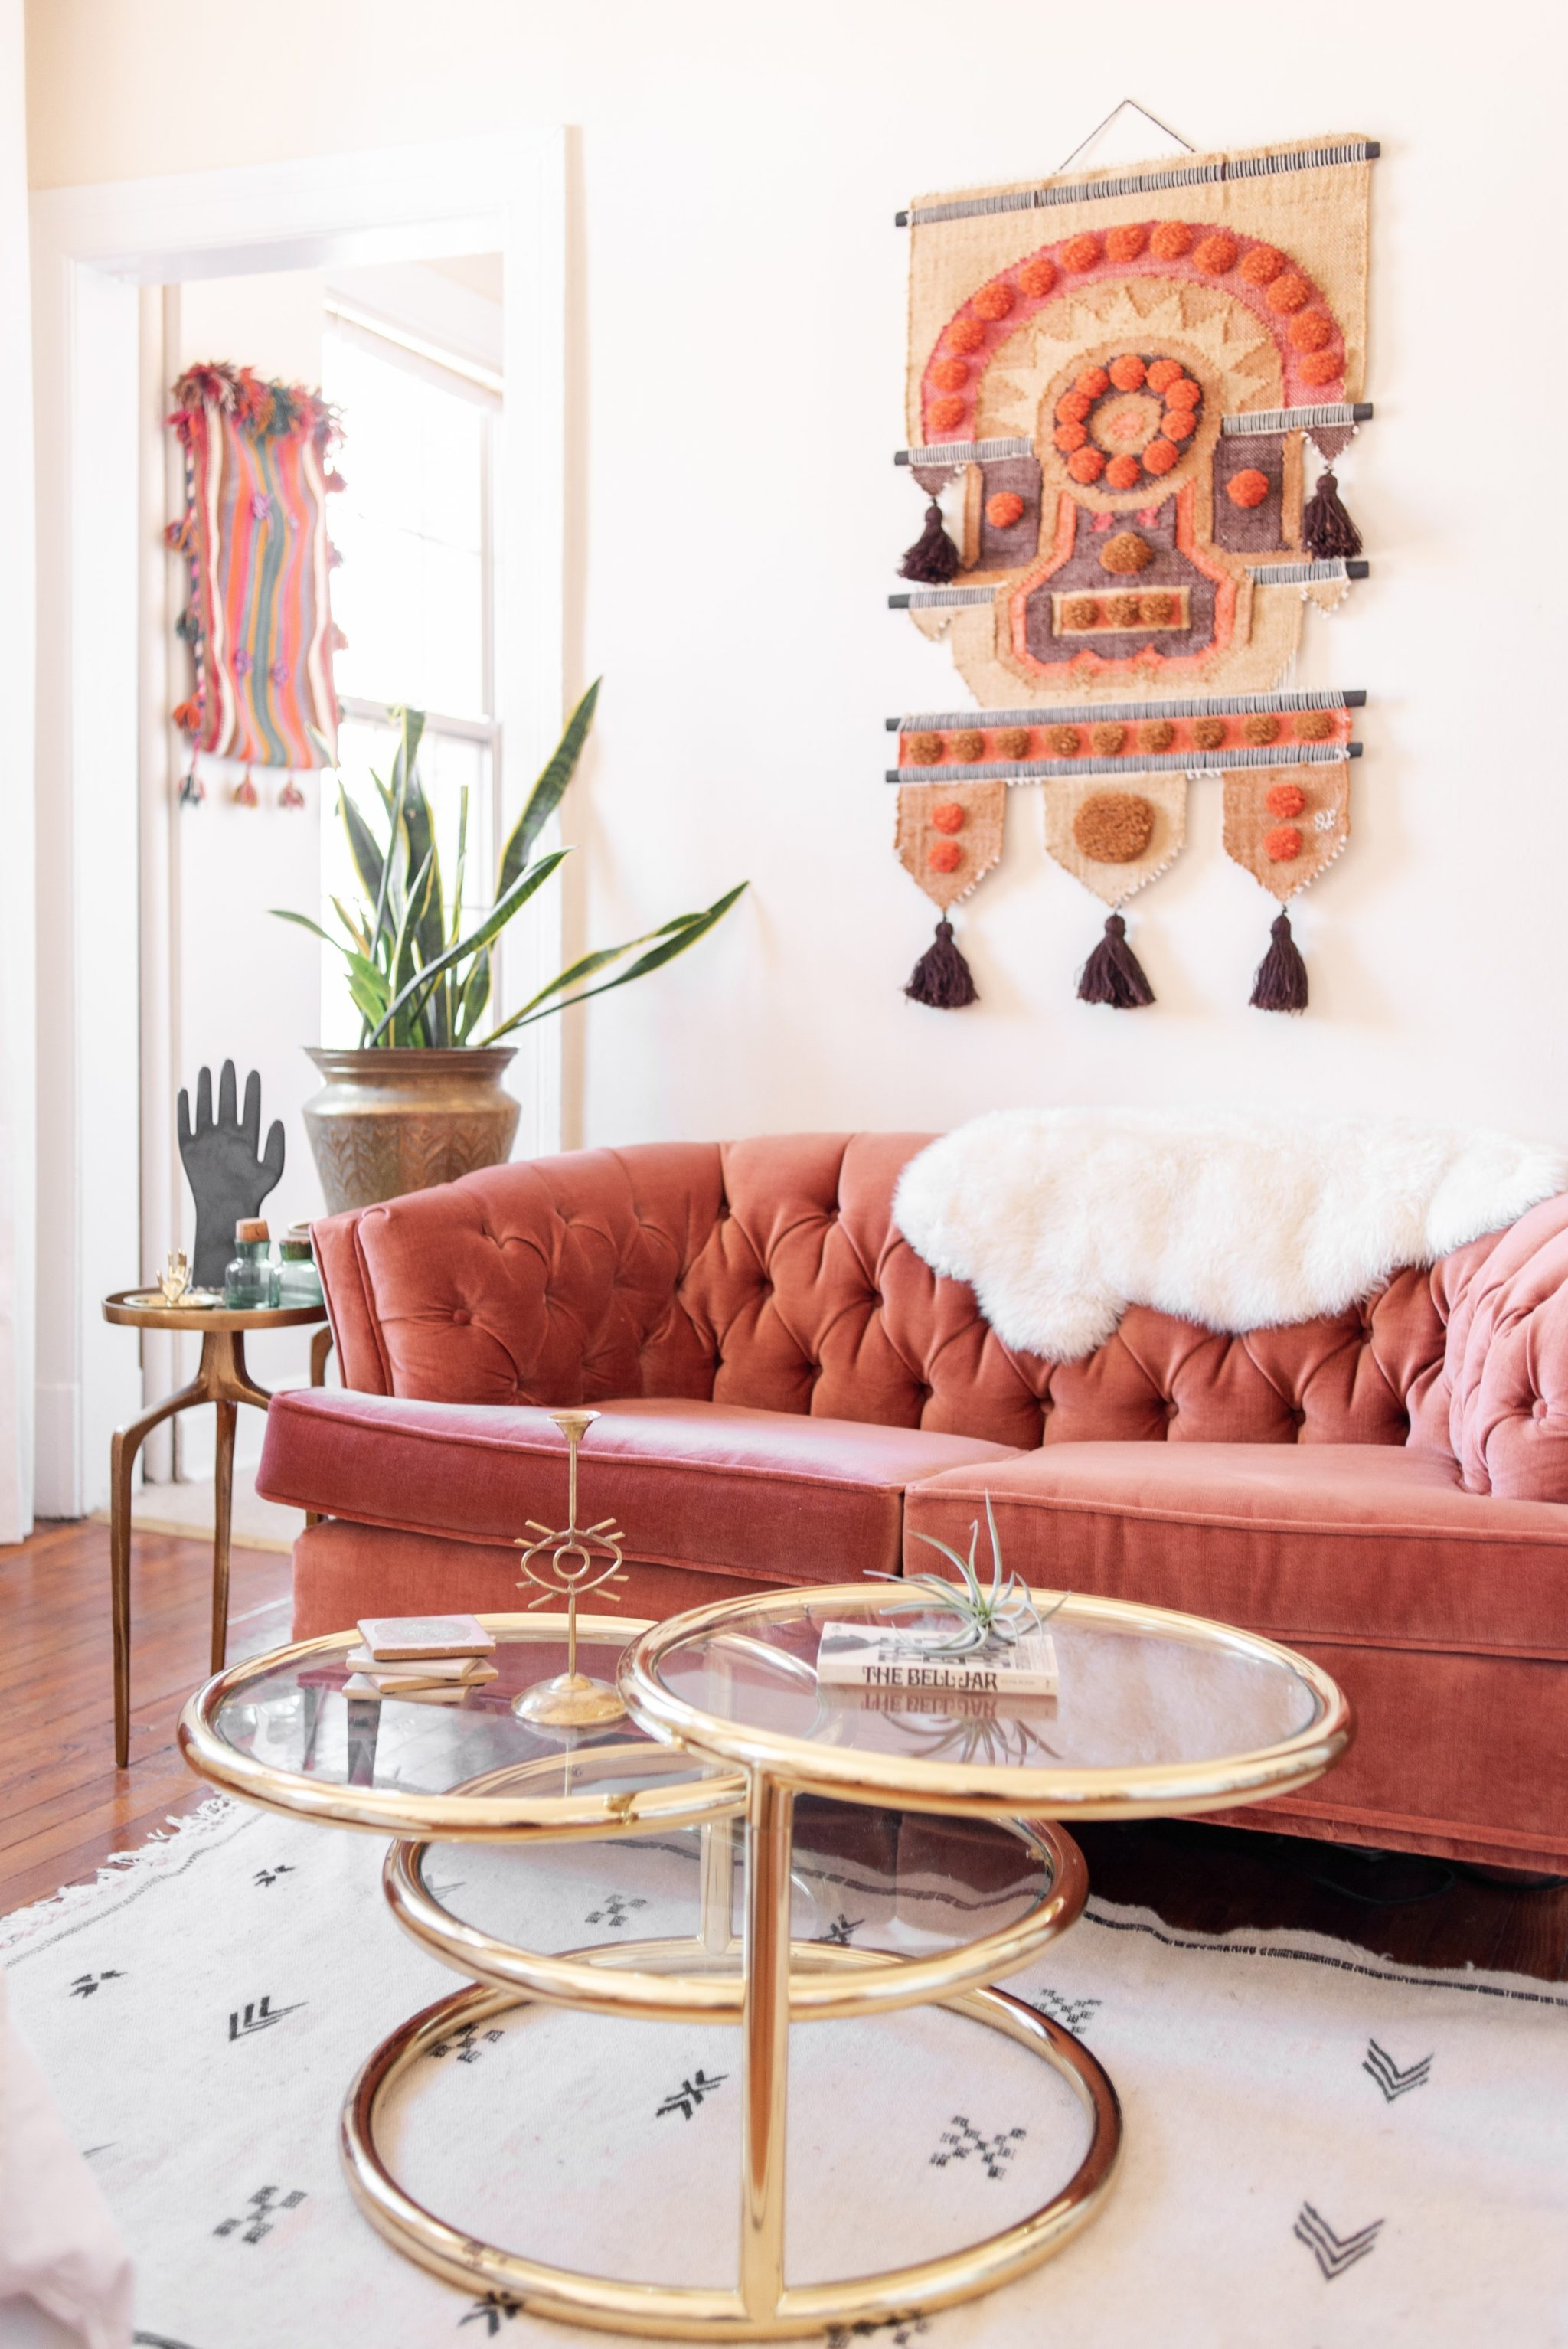 Look Inside My Home: An Artist's Wallpapered Studio in Mount Pleasant